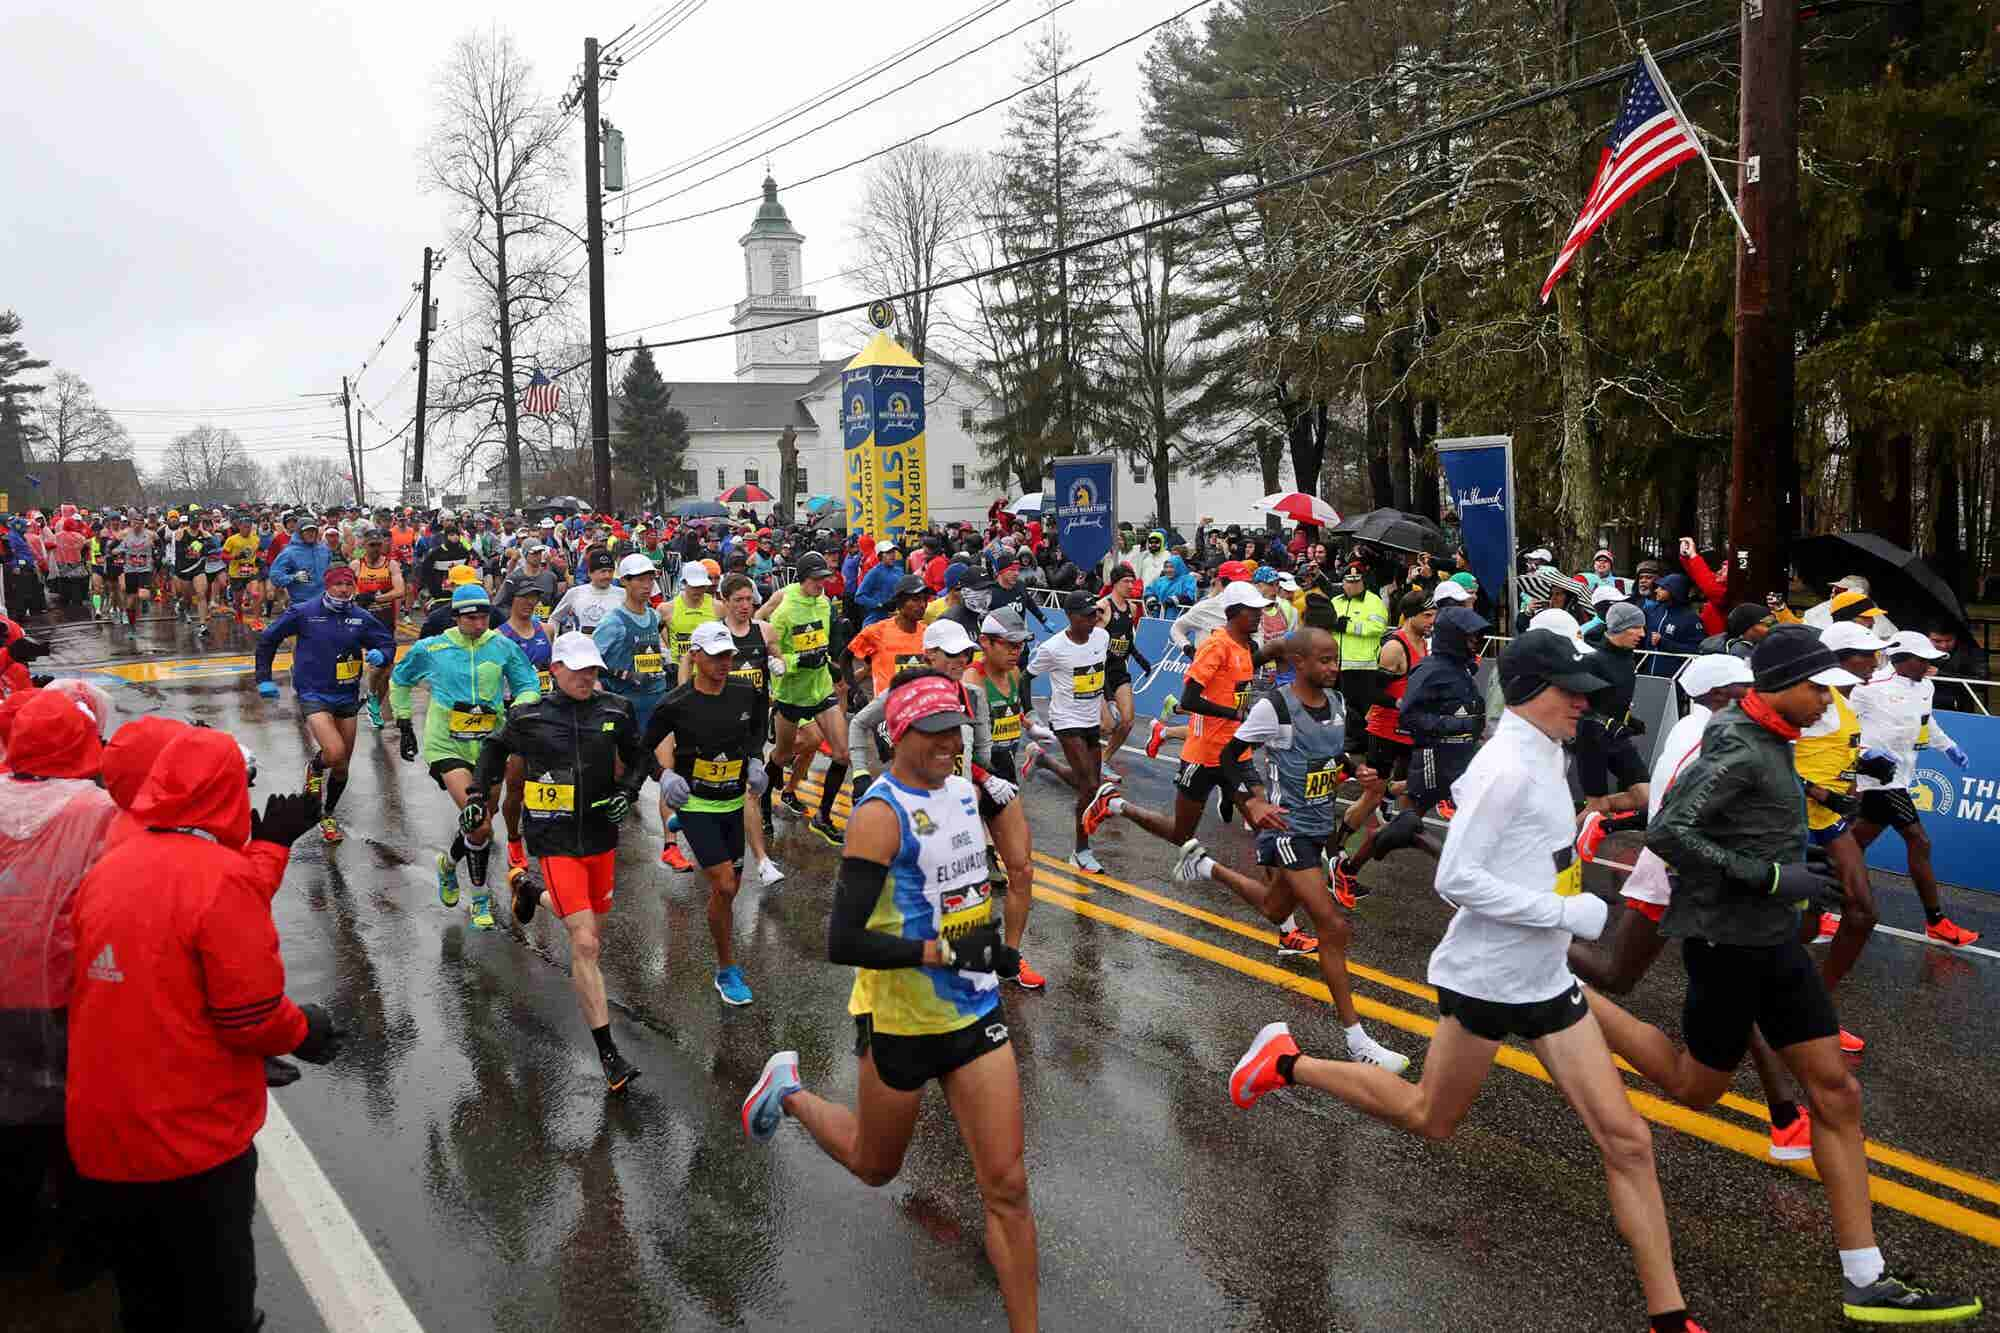 3 Takeaways from Adidas's Use of Personalized Content at the Boston Marathon